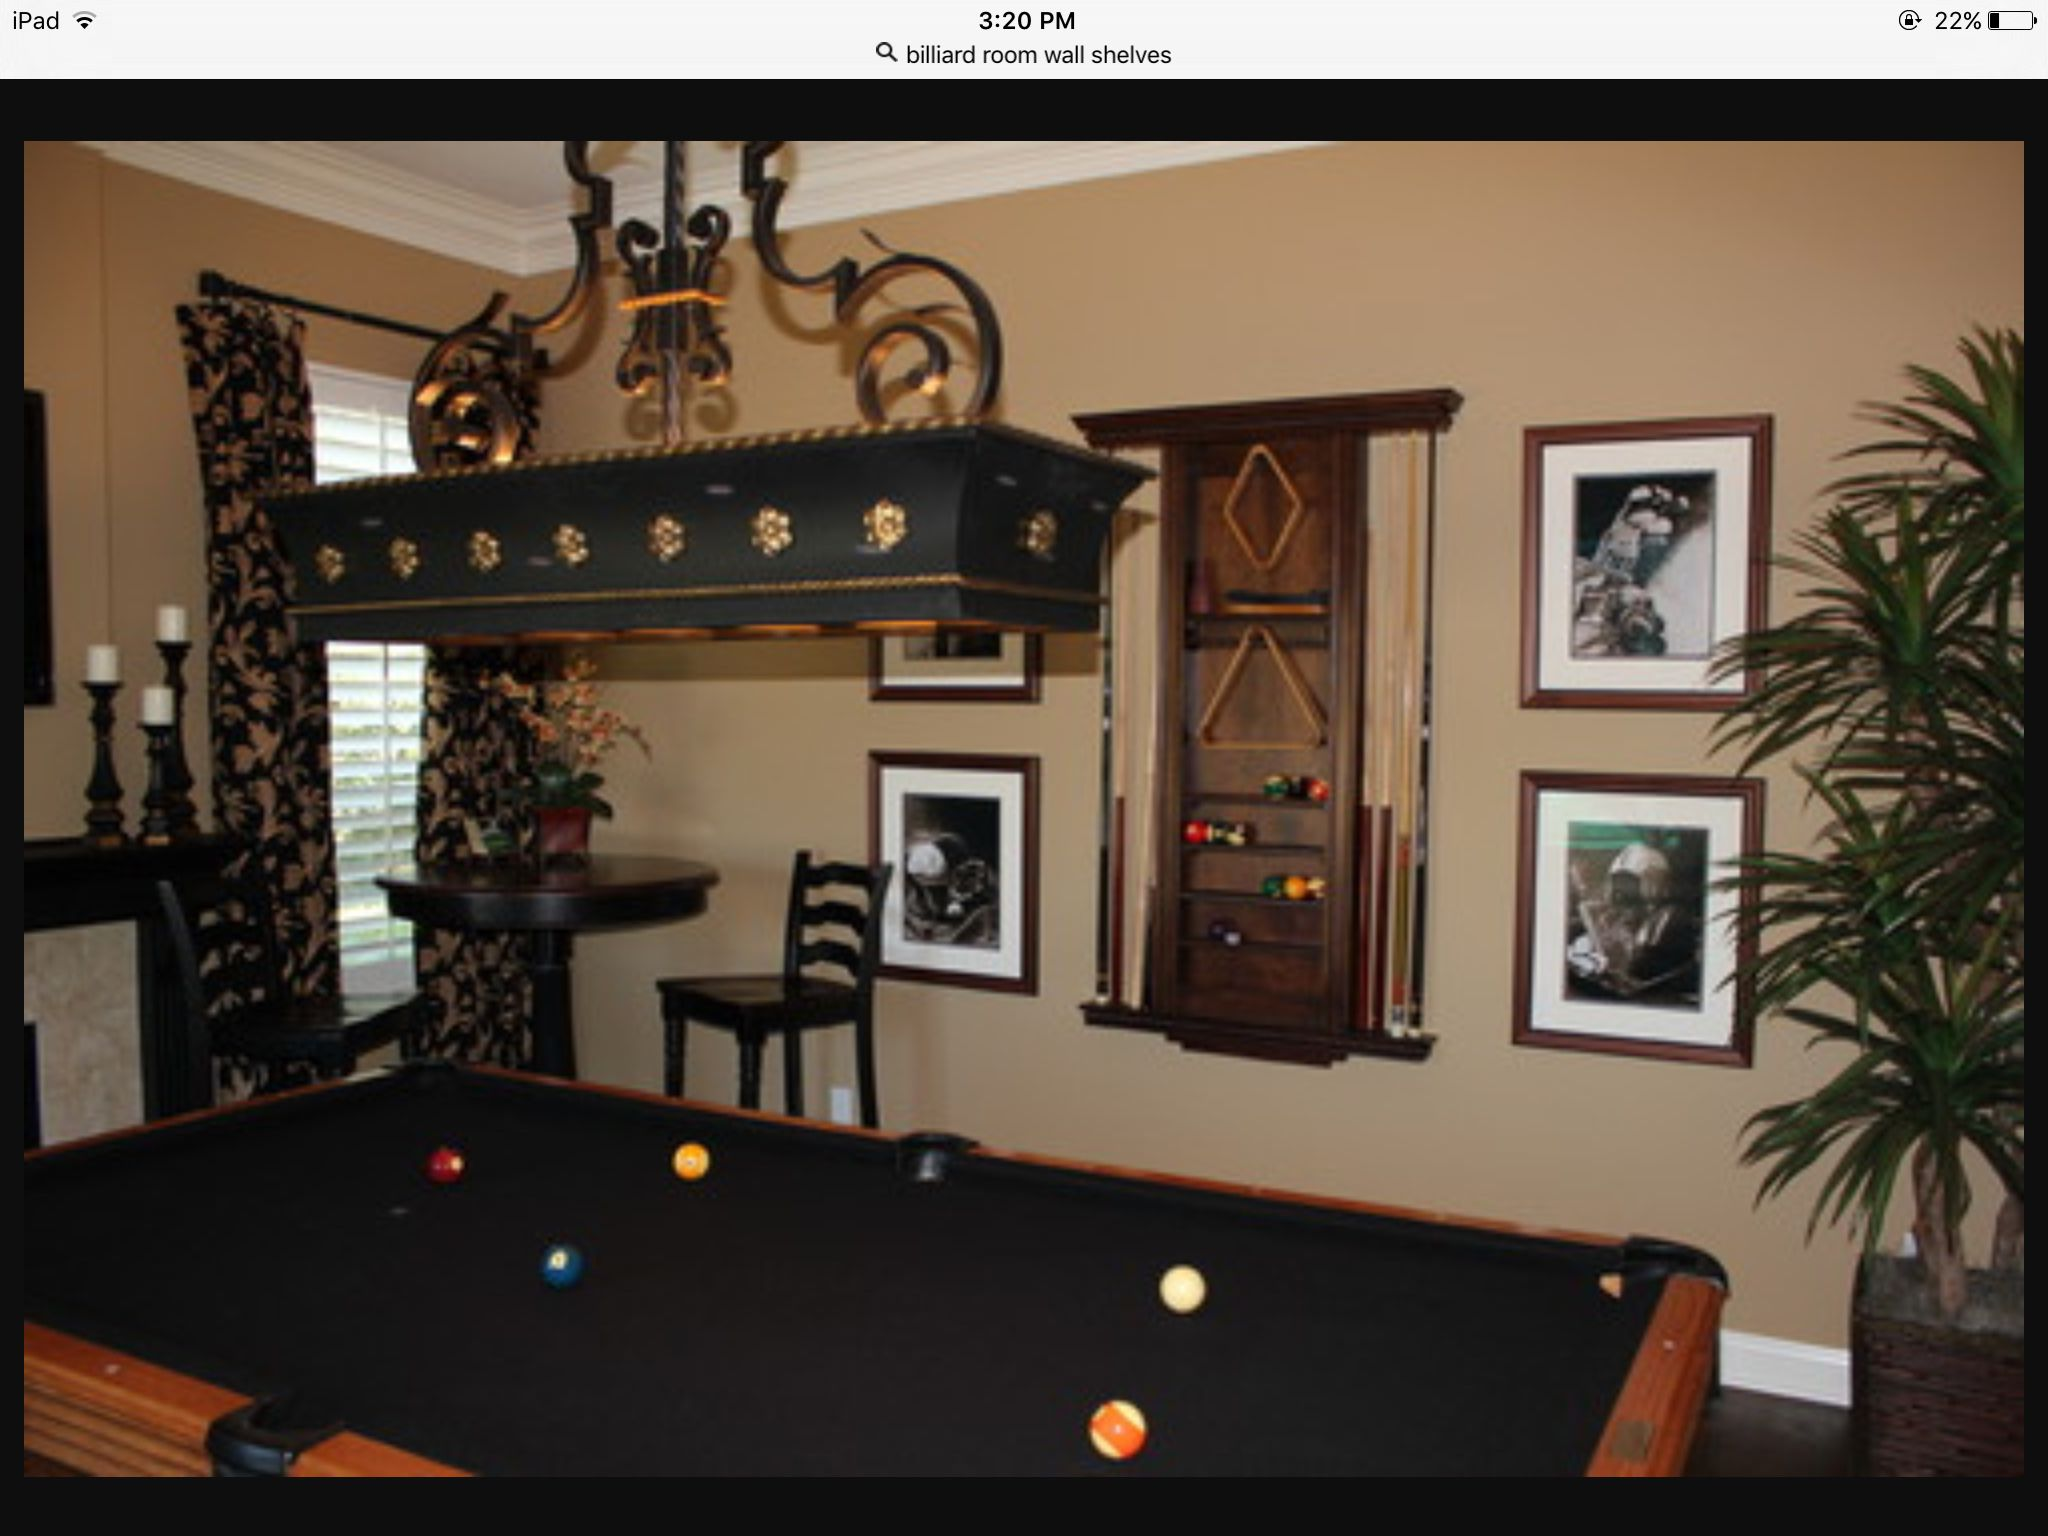 Lovee This Wall With Cue Stick Rack On Wall Billiard Room